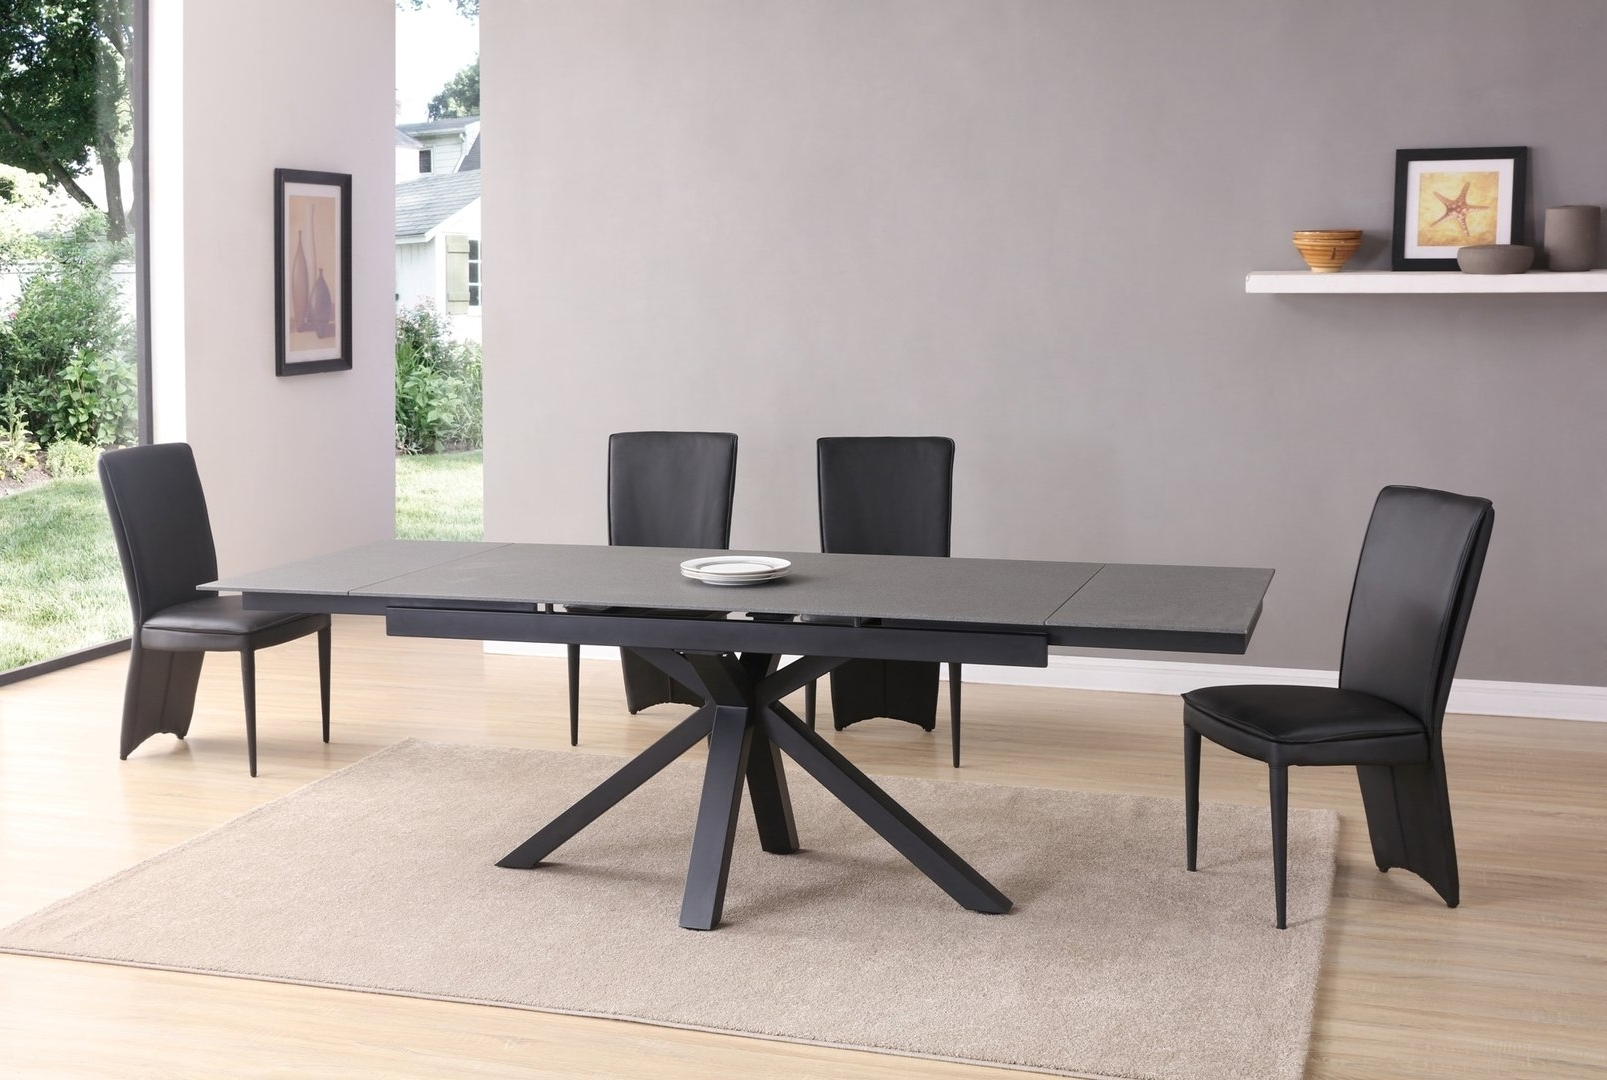 Extending Glass Dining Tables And 8 Chairs Throughout Well Known Grey And Black Stone Glass Dining Table And 8 Chairs – Homegenies (Gallery 19 of 25)